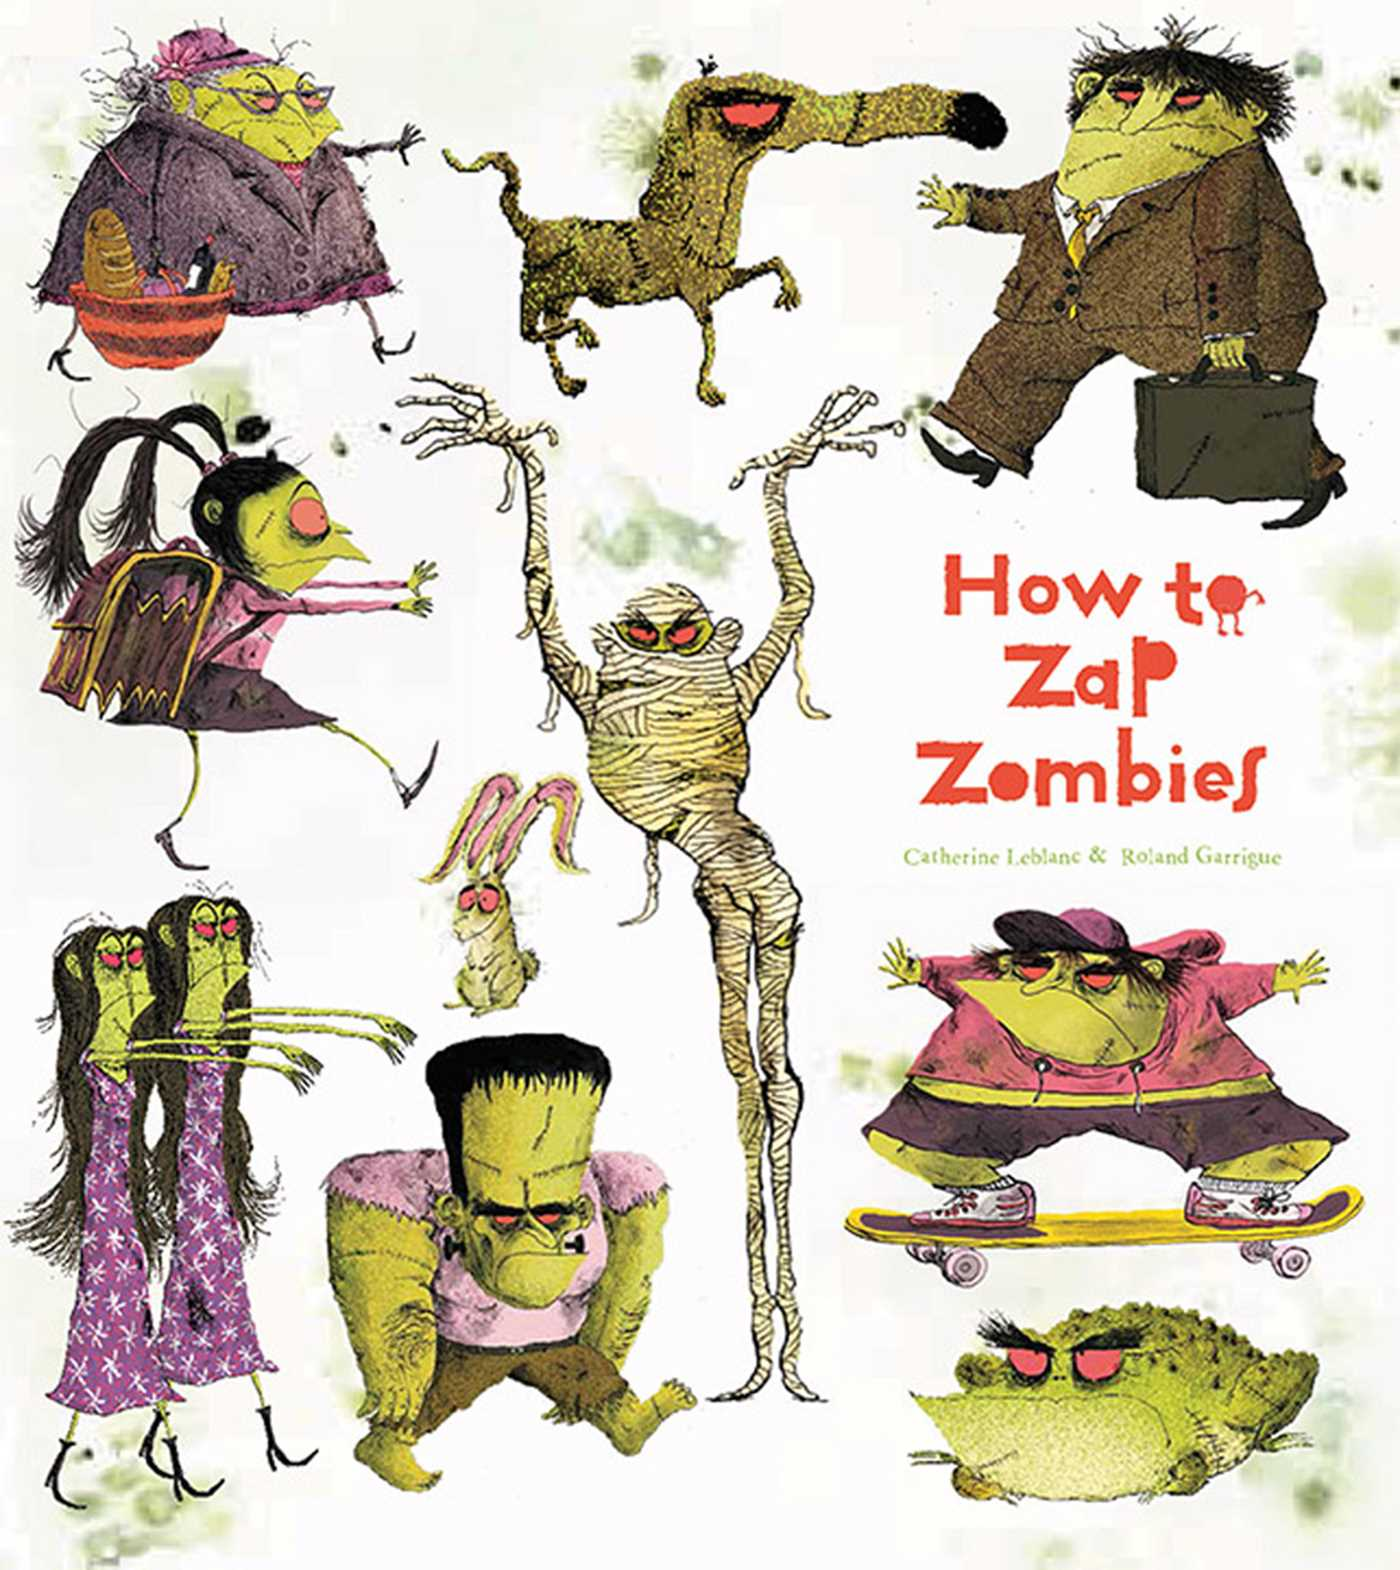 how to zap zombies book by catherine leblanc roland garrigue